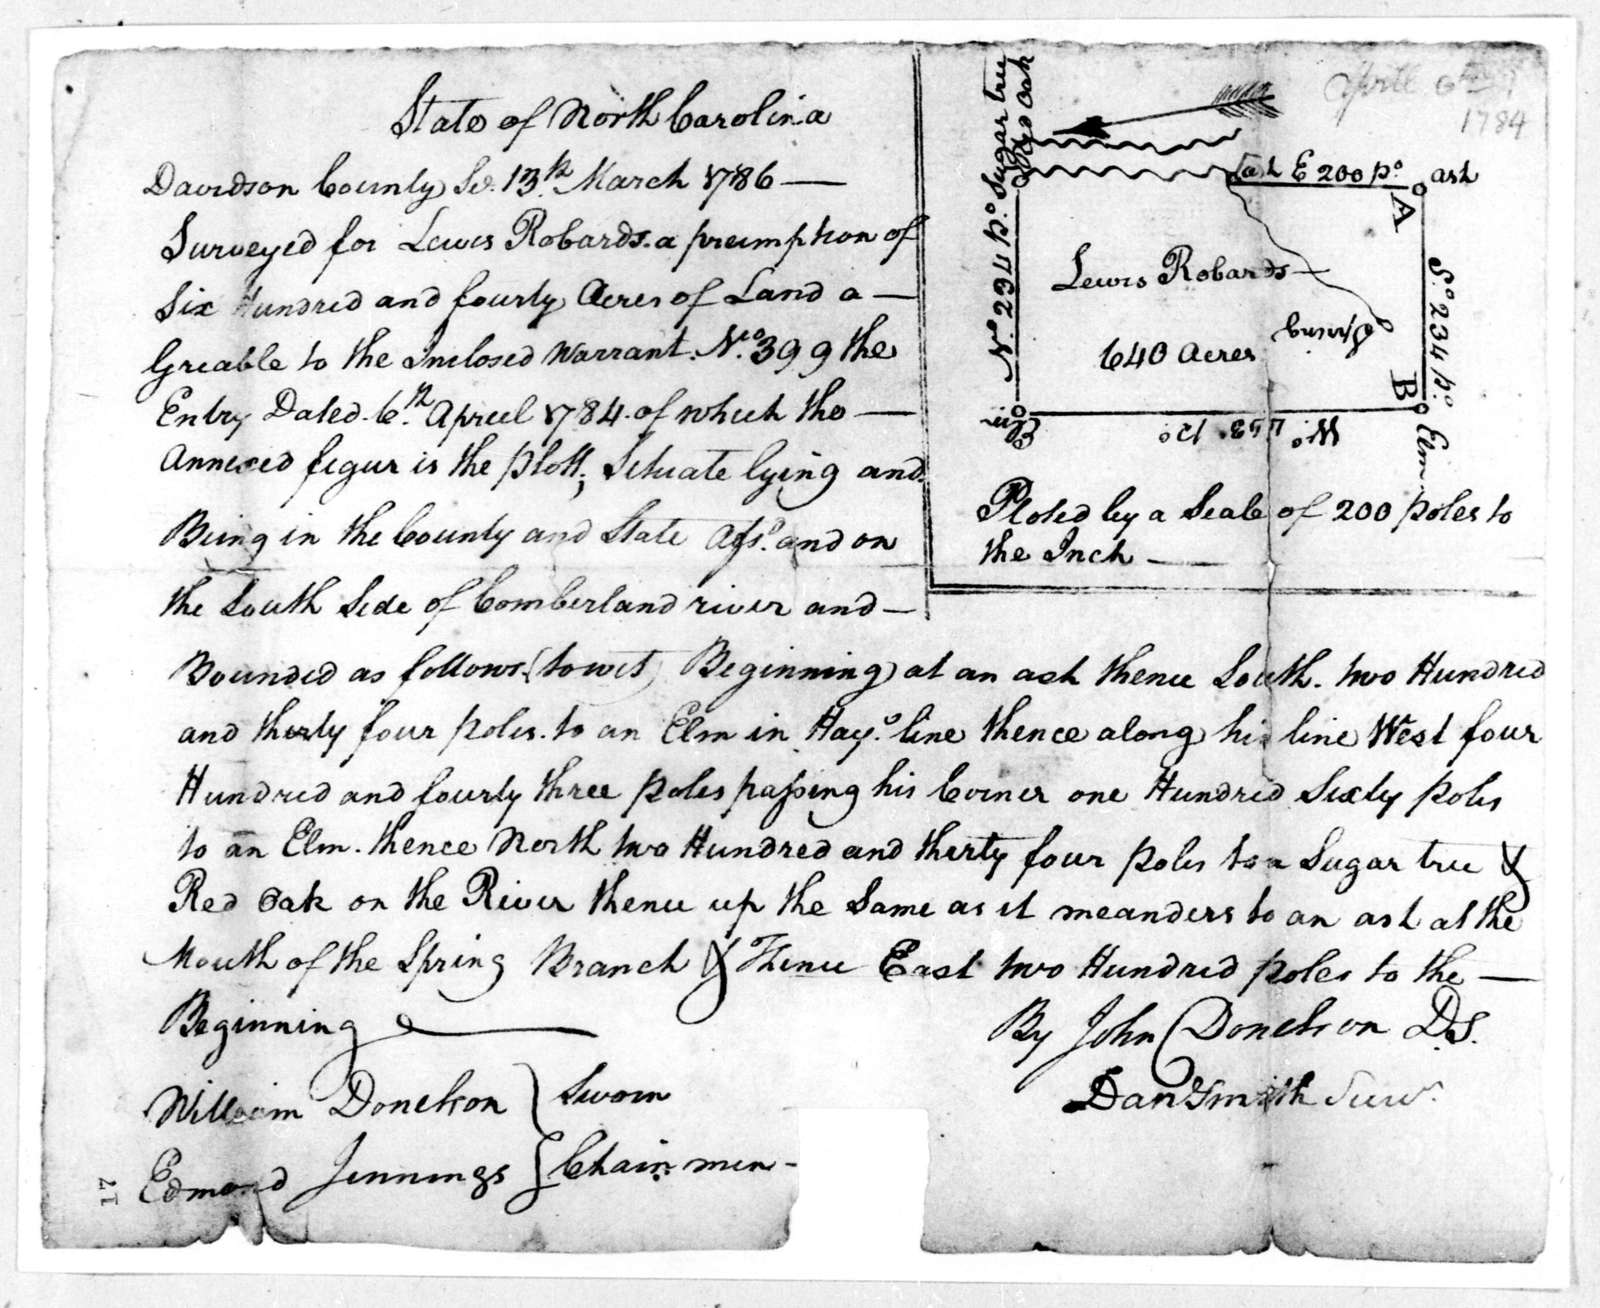 John Donelson to Lewis Robards, March 13, 1786